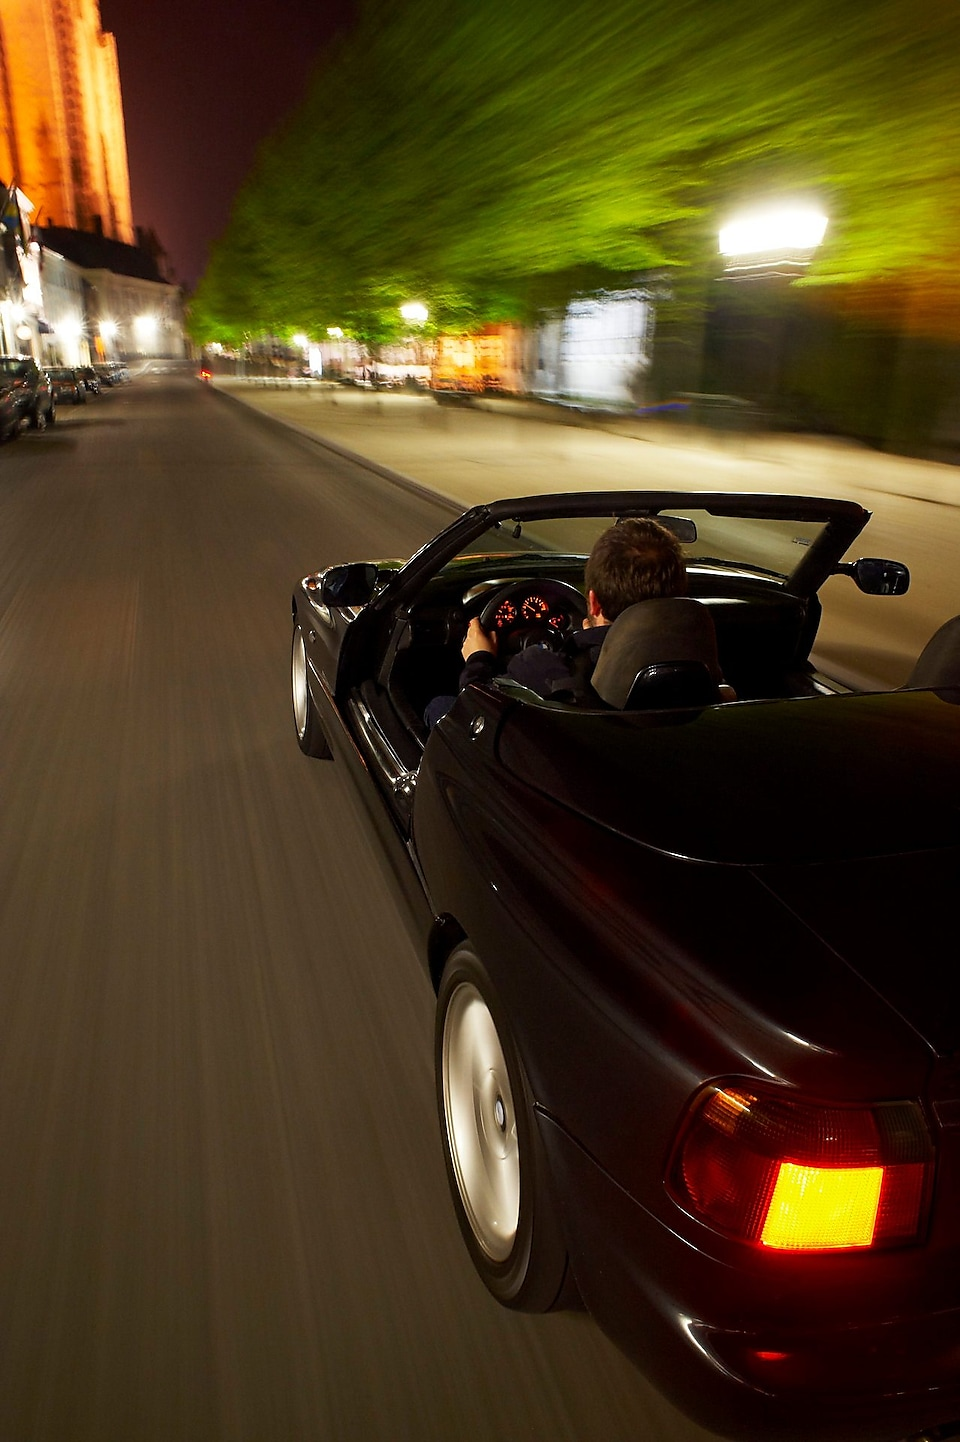 Black convertible car driving through Brugge streets at night